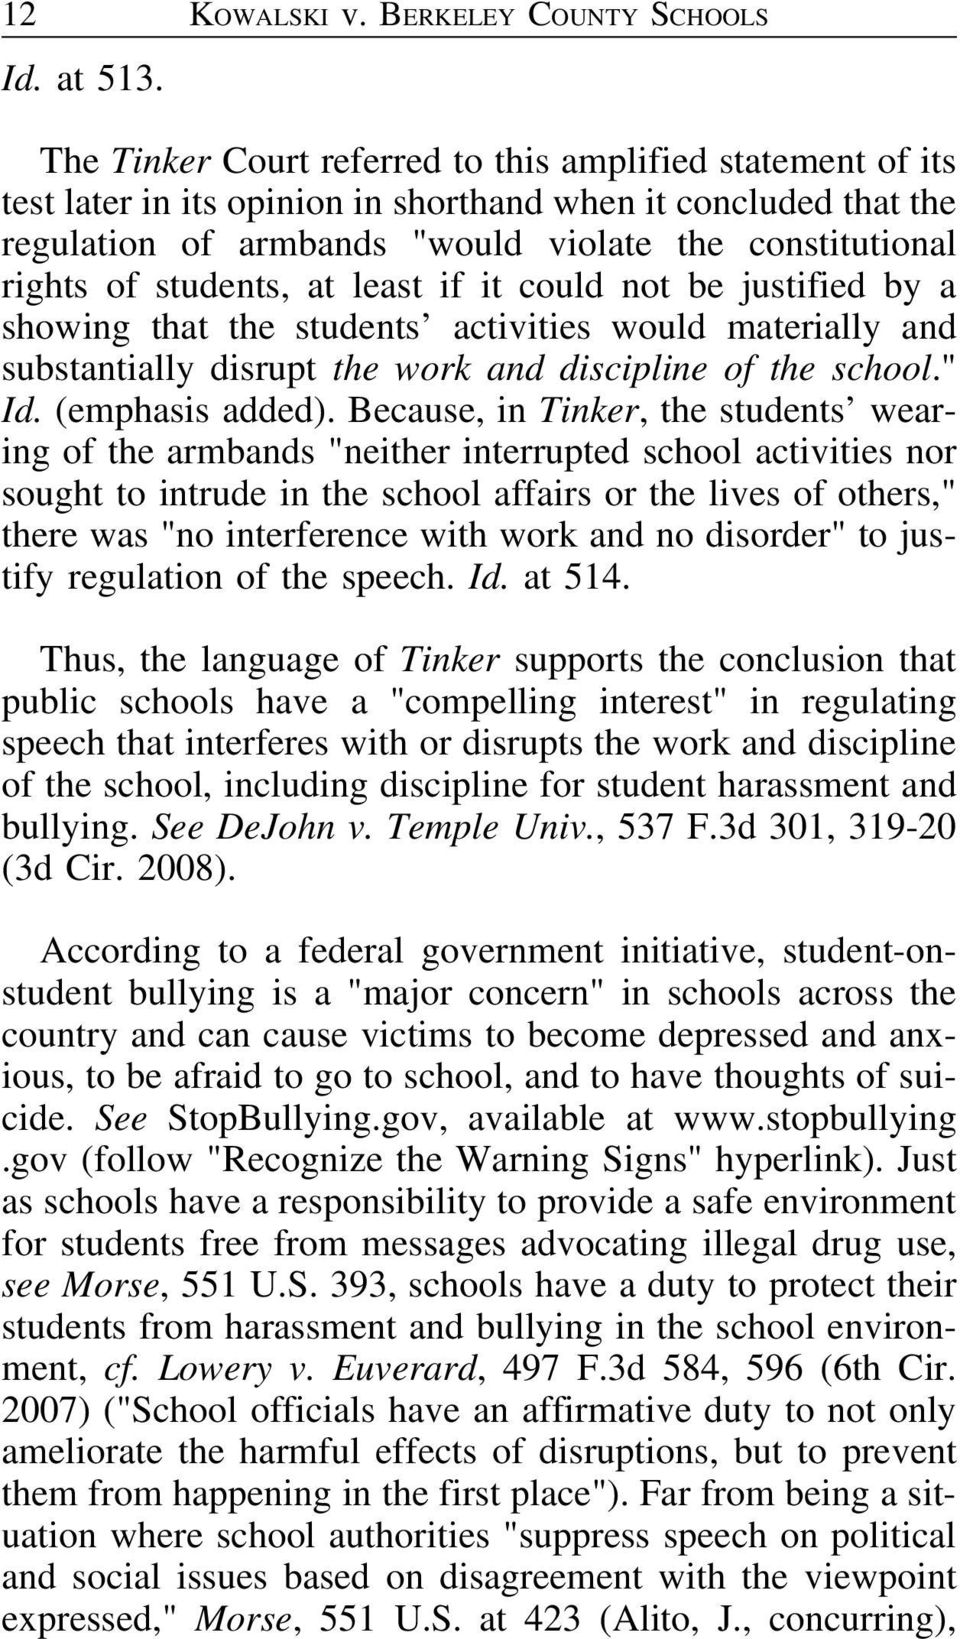 "students, at least if it could not be justified by a showing that the students activities would materially and substantially disrupt the work and discipline of the school."" Id. (emphasis added)."